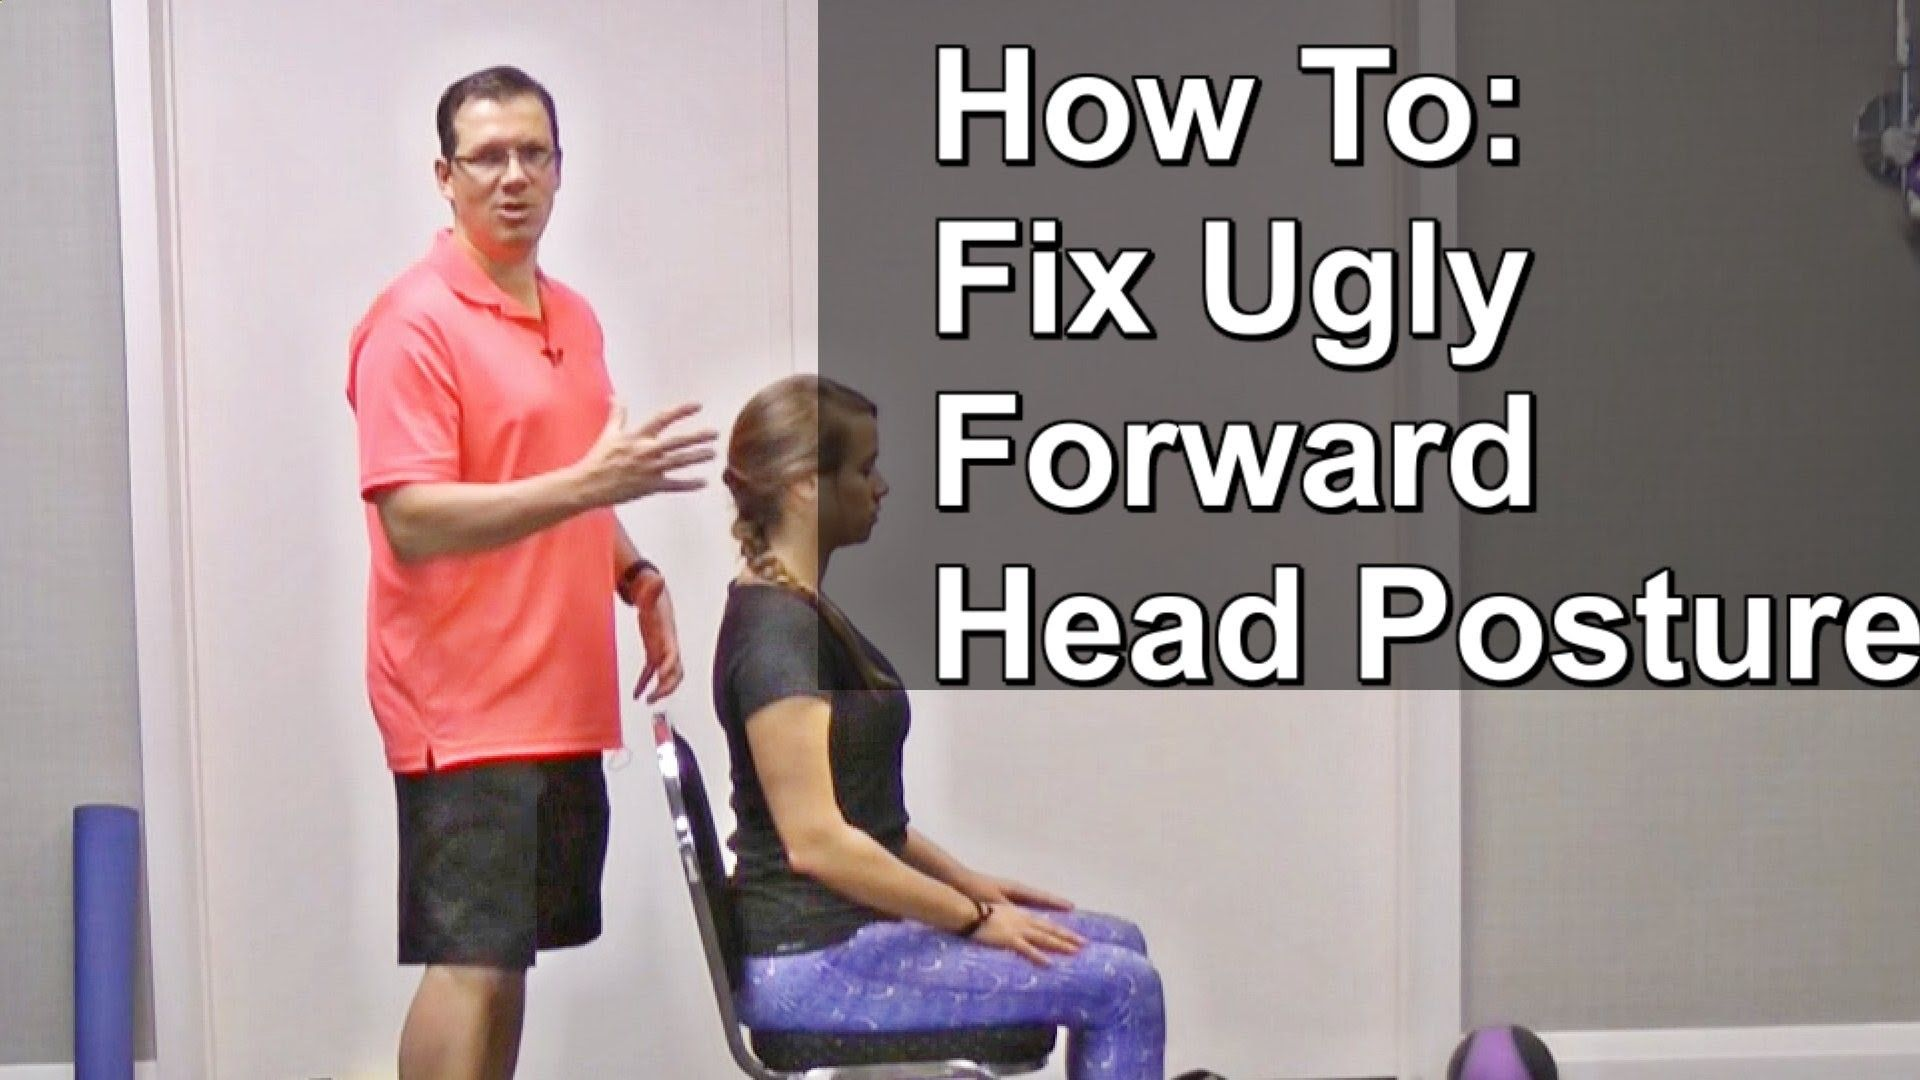 Searching for one of the best exercises that will help you fix ugly forward head posture? Check out this video. This simple exercise called the Chin Tucks ...